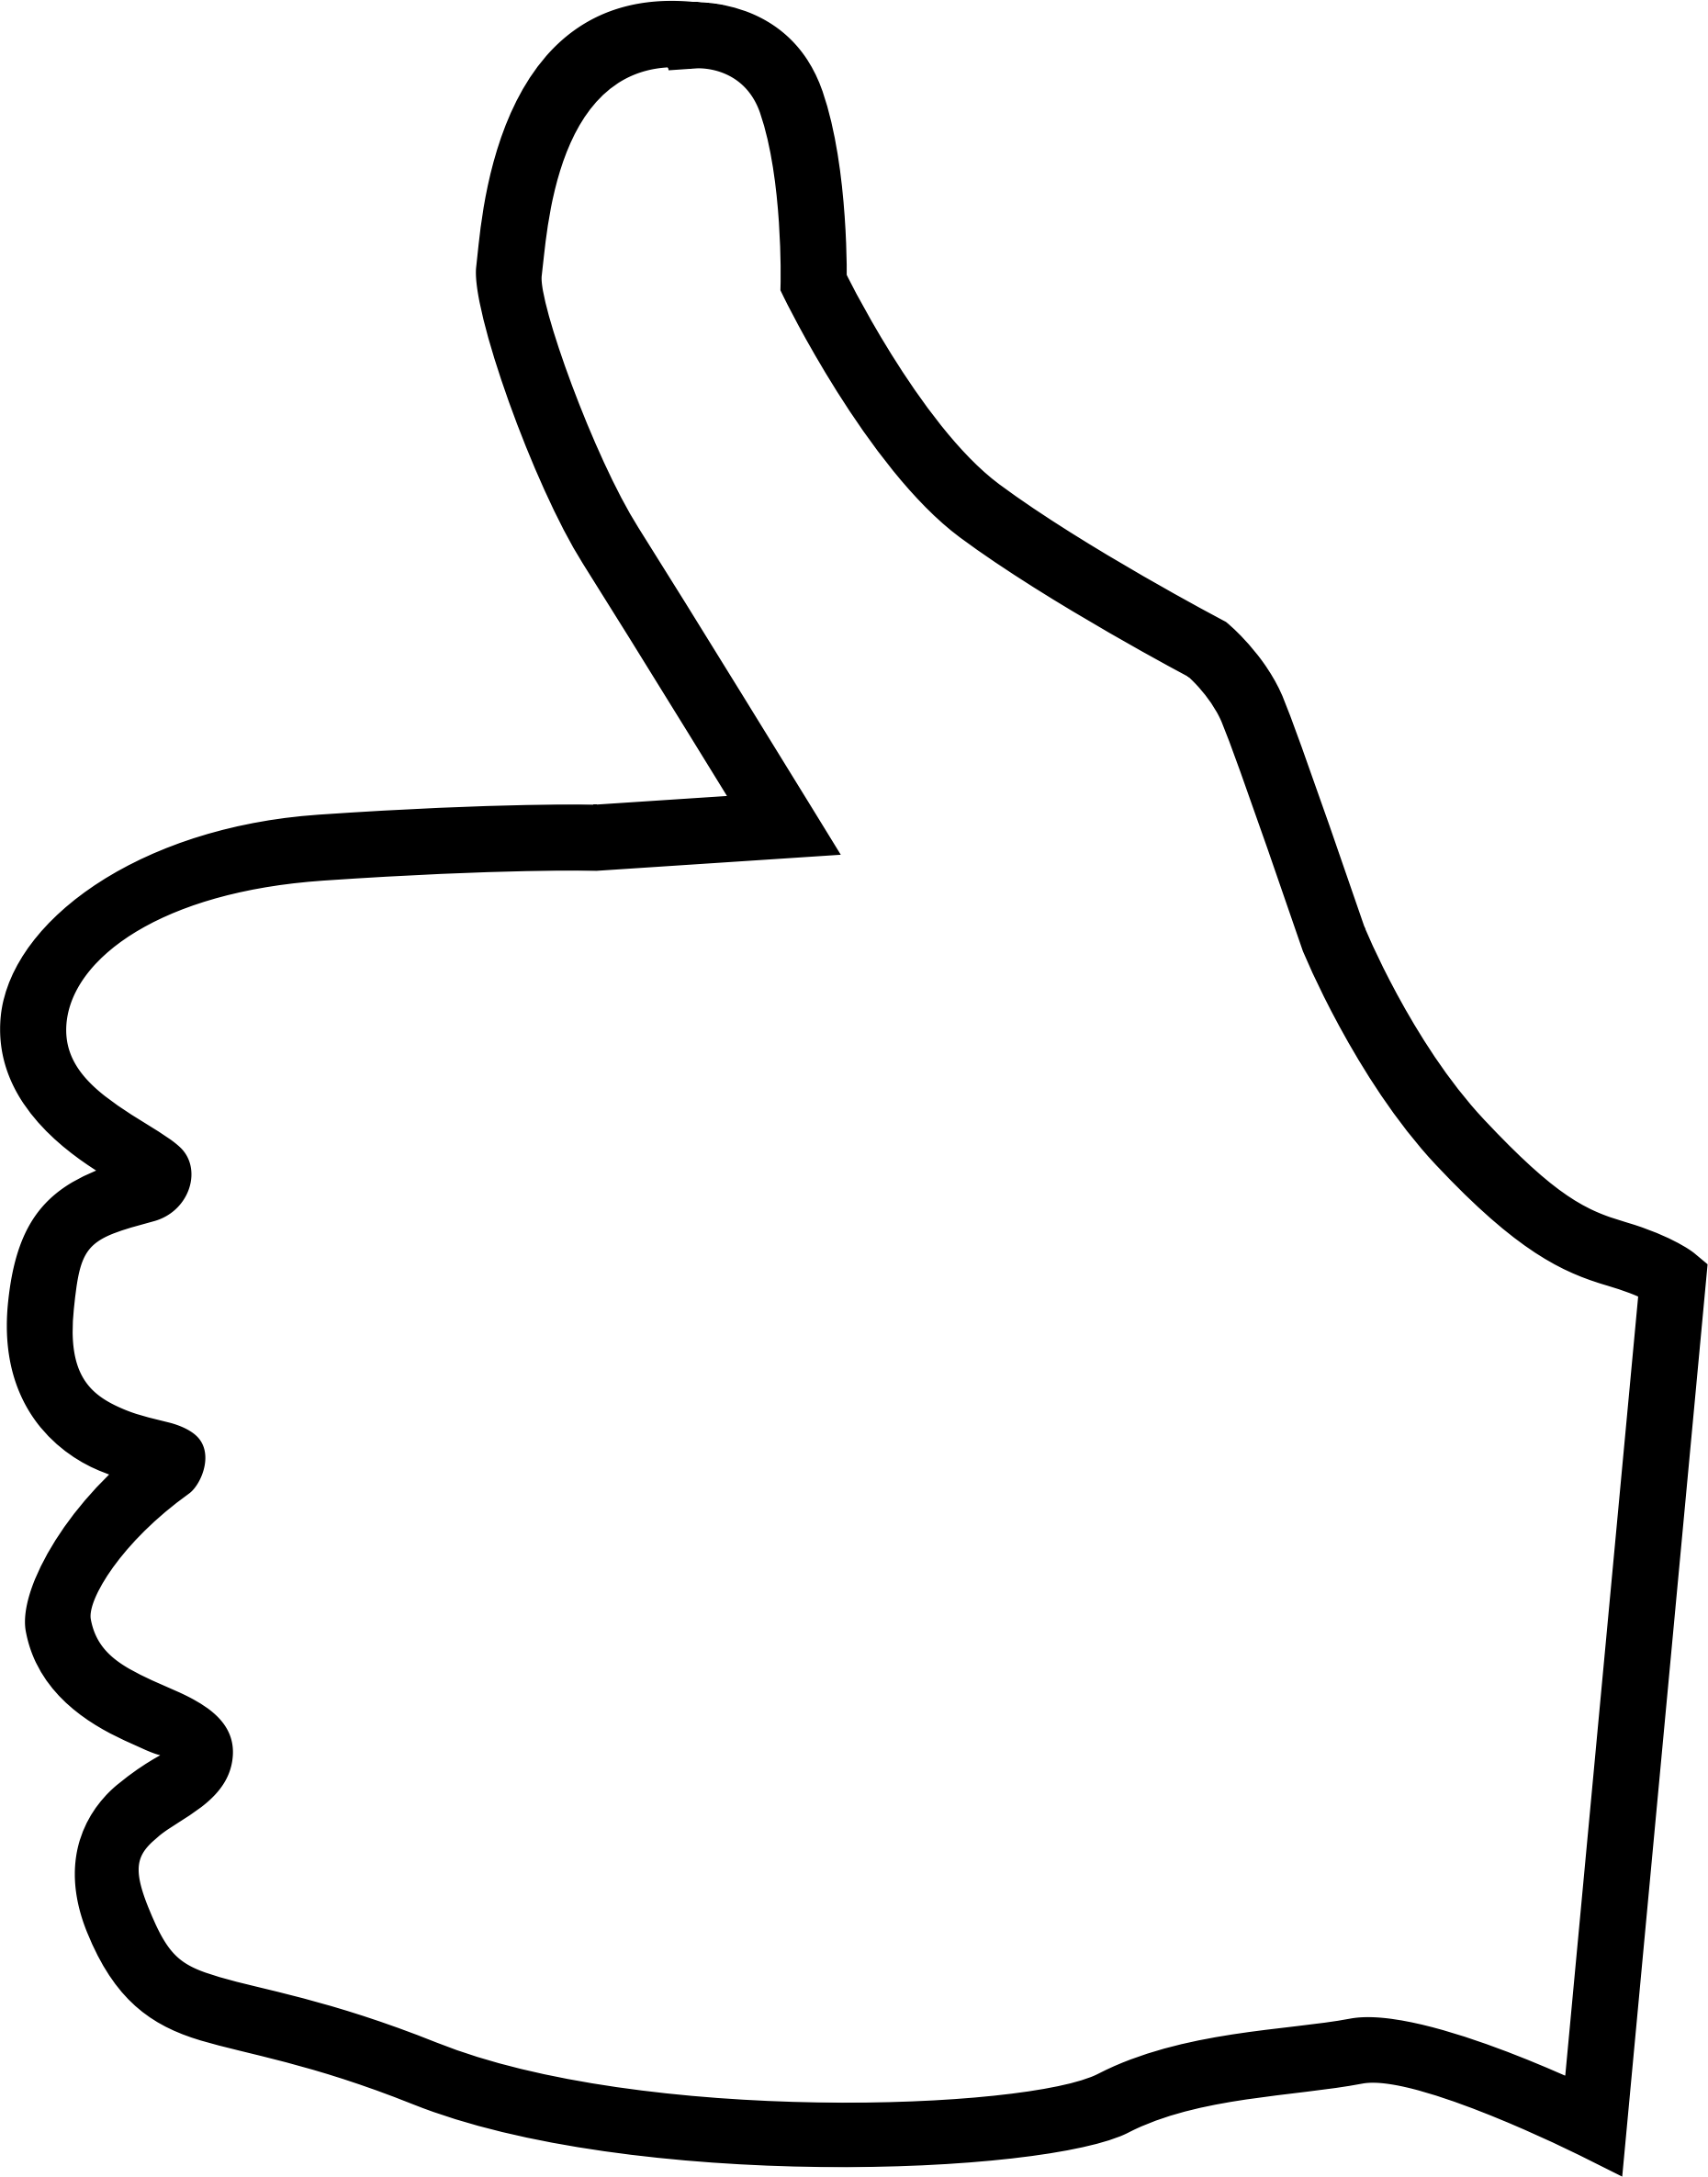 1860x2371 Thumbs Up Thumb Up Clip Art Clipart 3 Clipartix 4